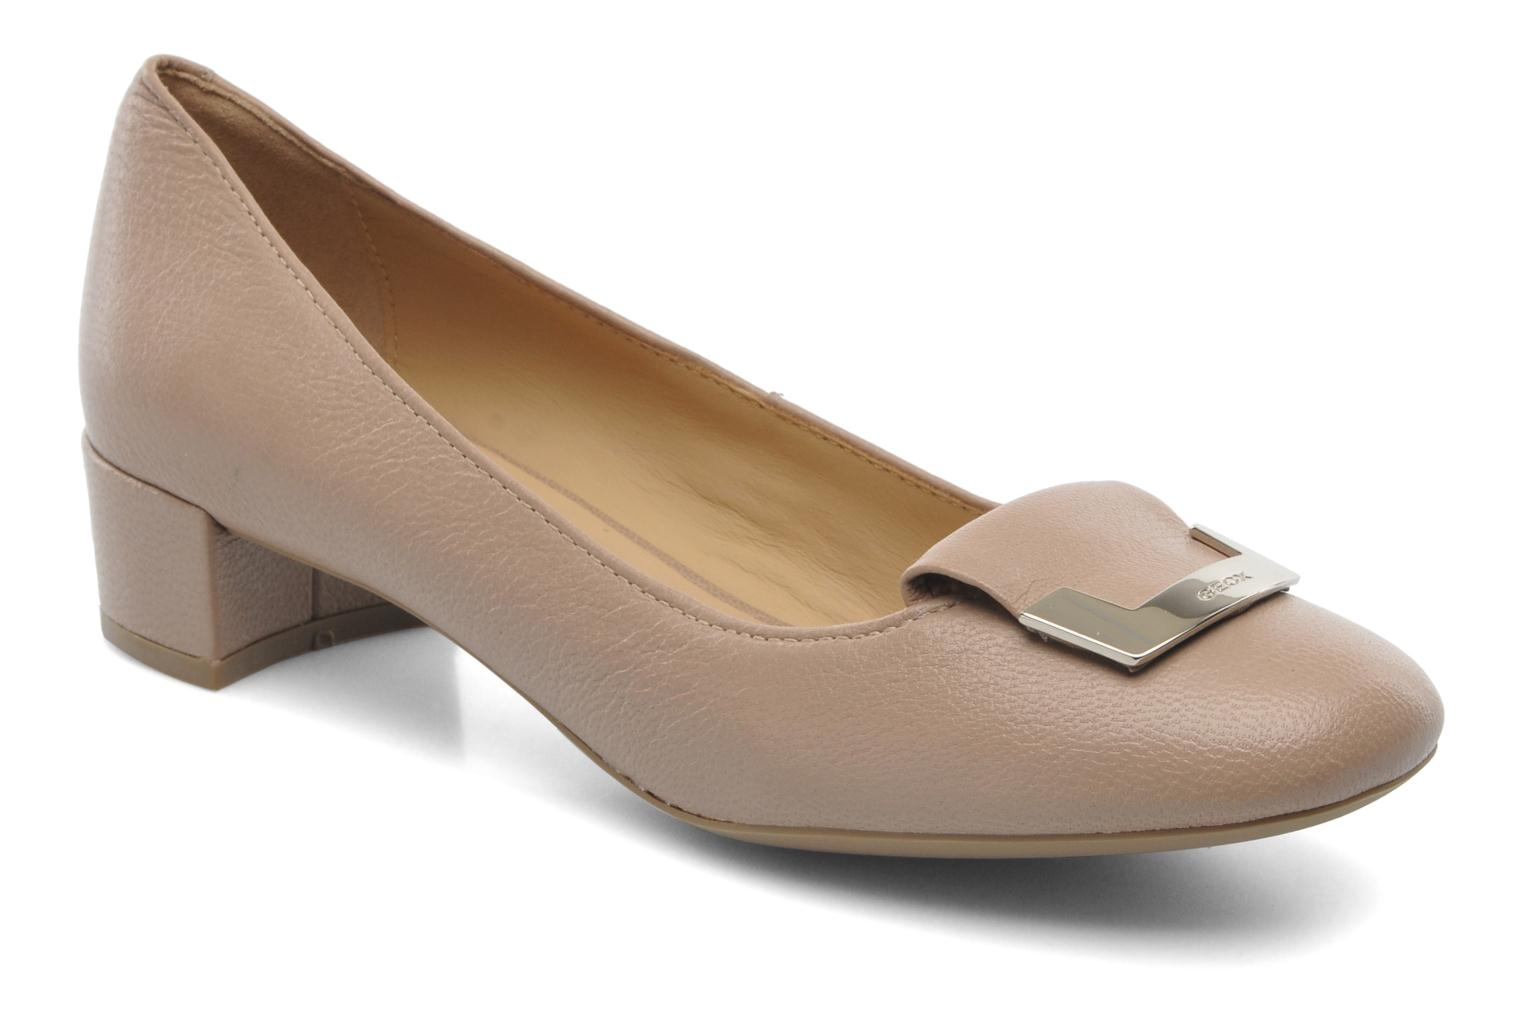 Chaussures Geox Carey taupe Casual femme FneT0kUE